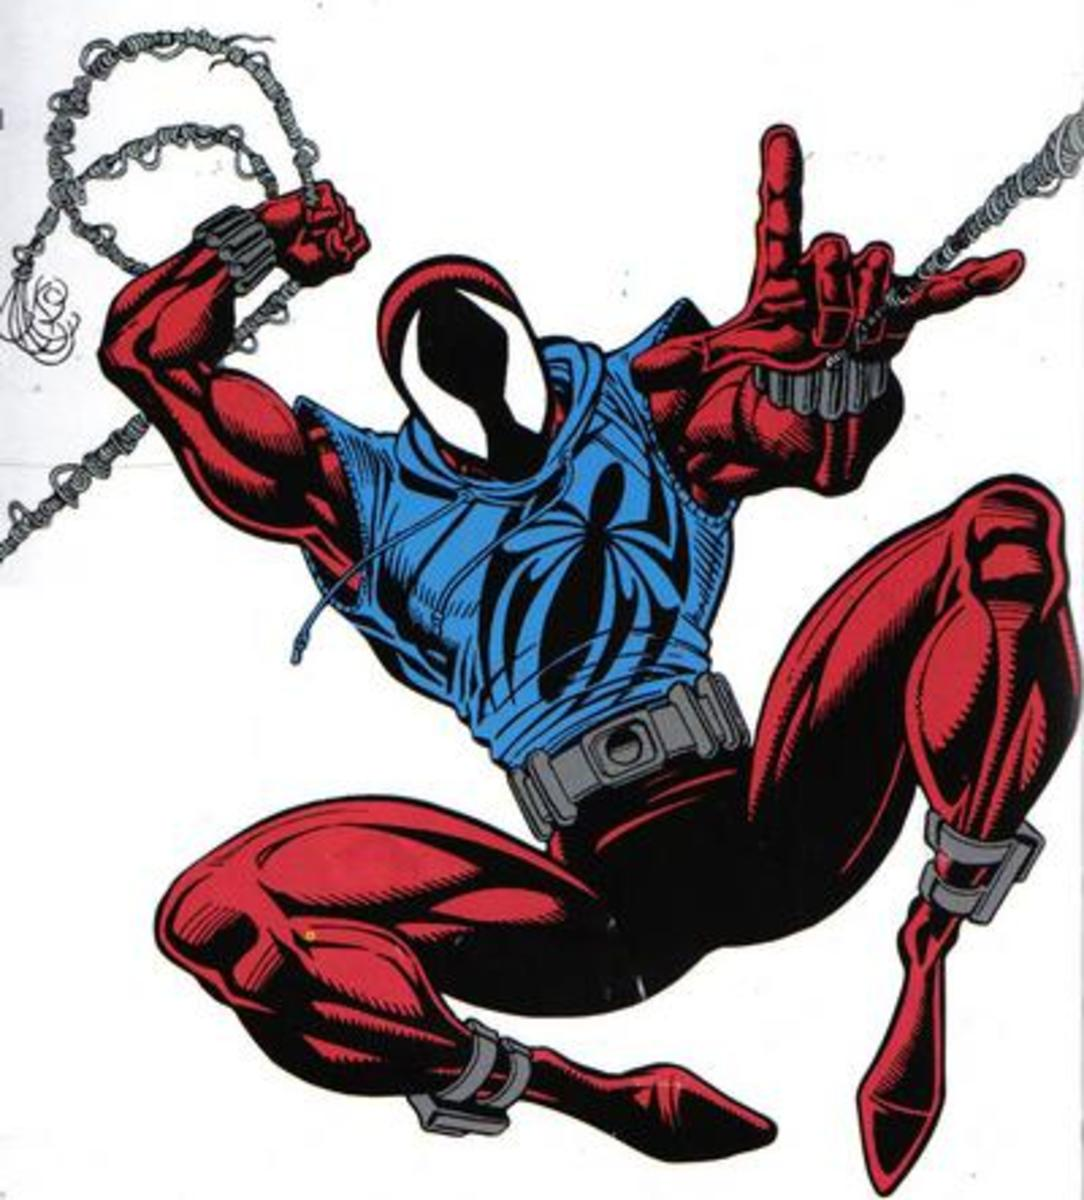 The Scarlet Spider Costume